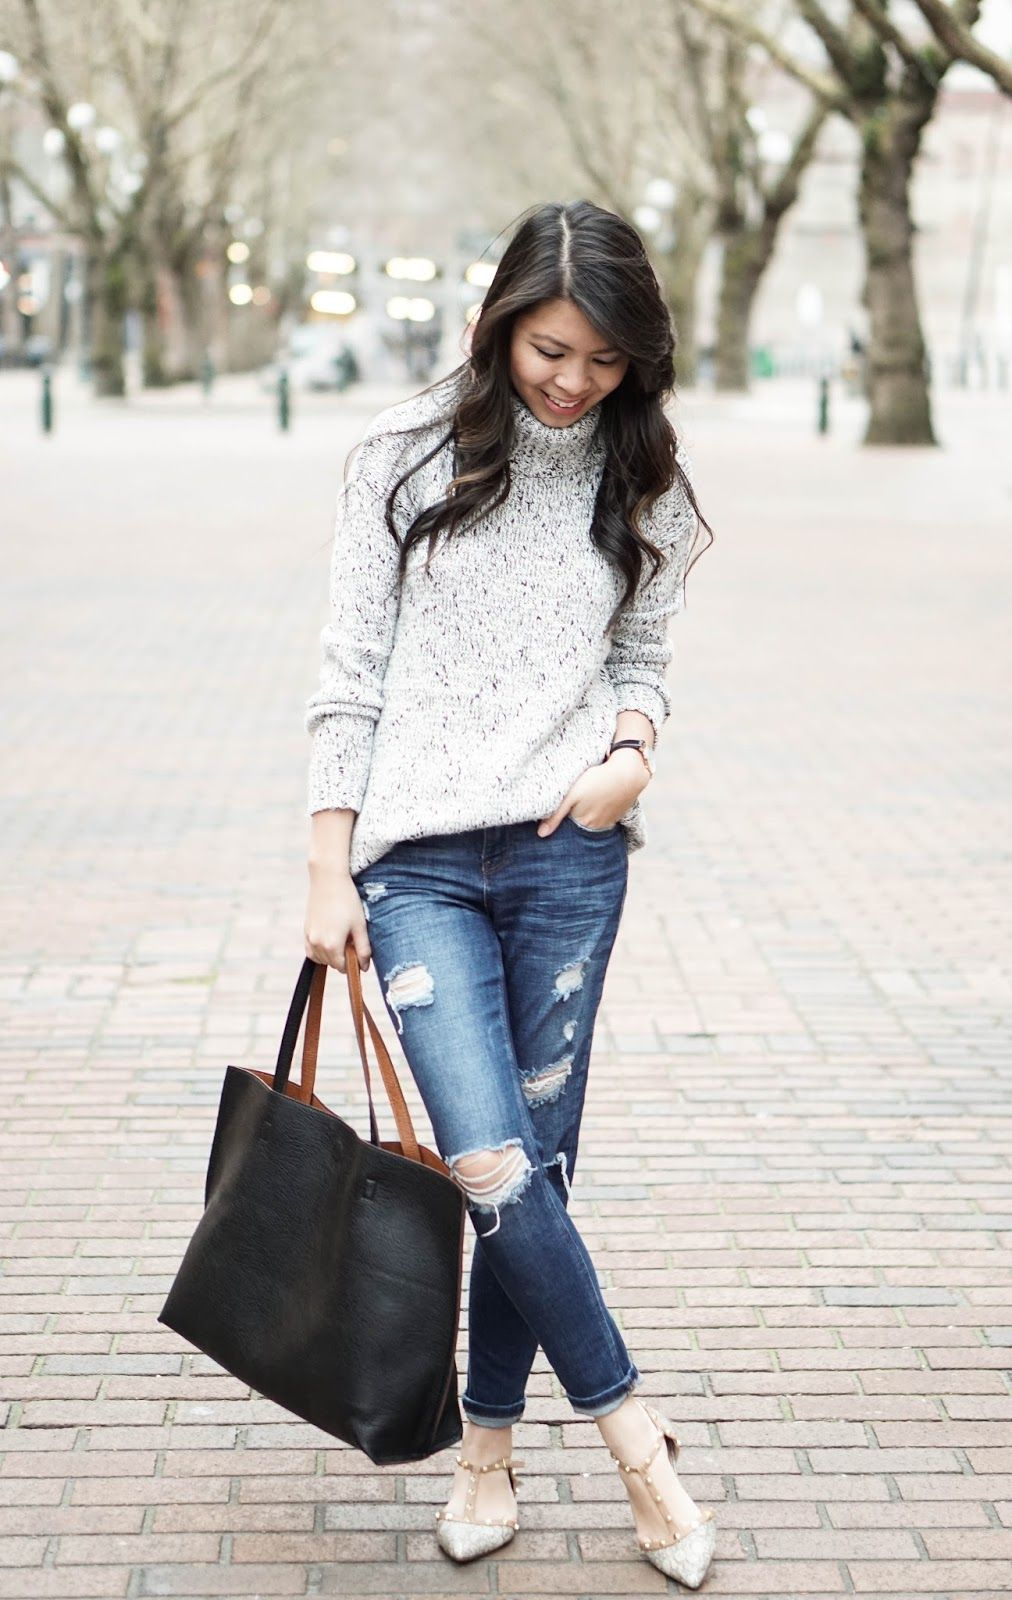 Forever21 sweater, Topshop ripped jeans, affordable tote, and Valentino-inspired flats from Nordstrom Halogen